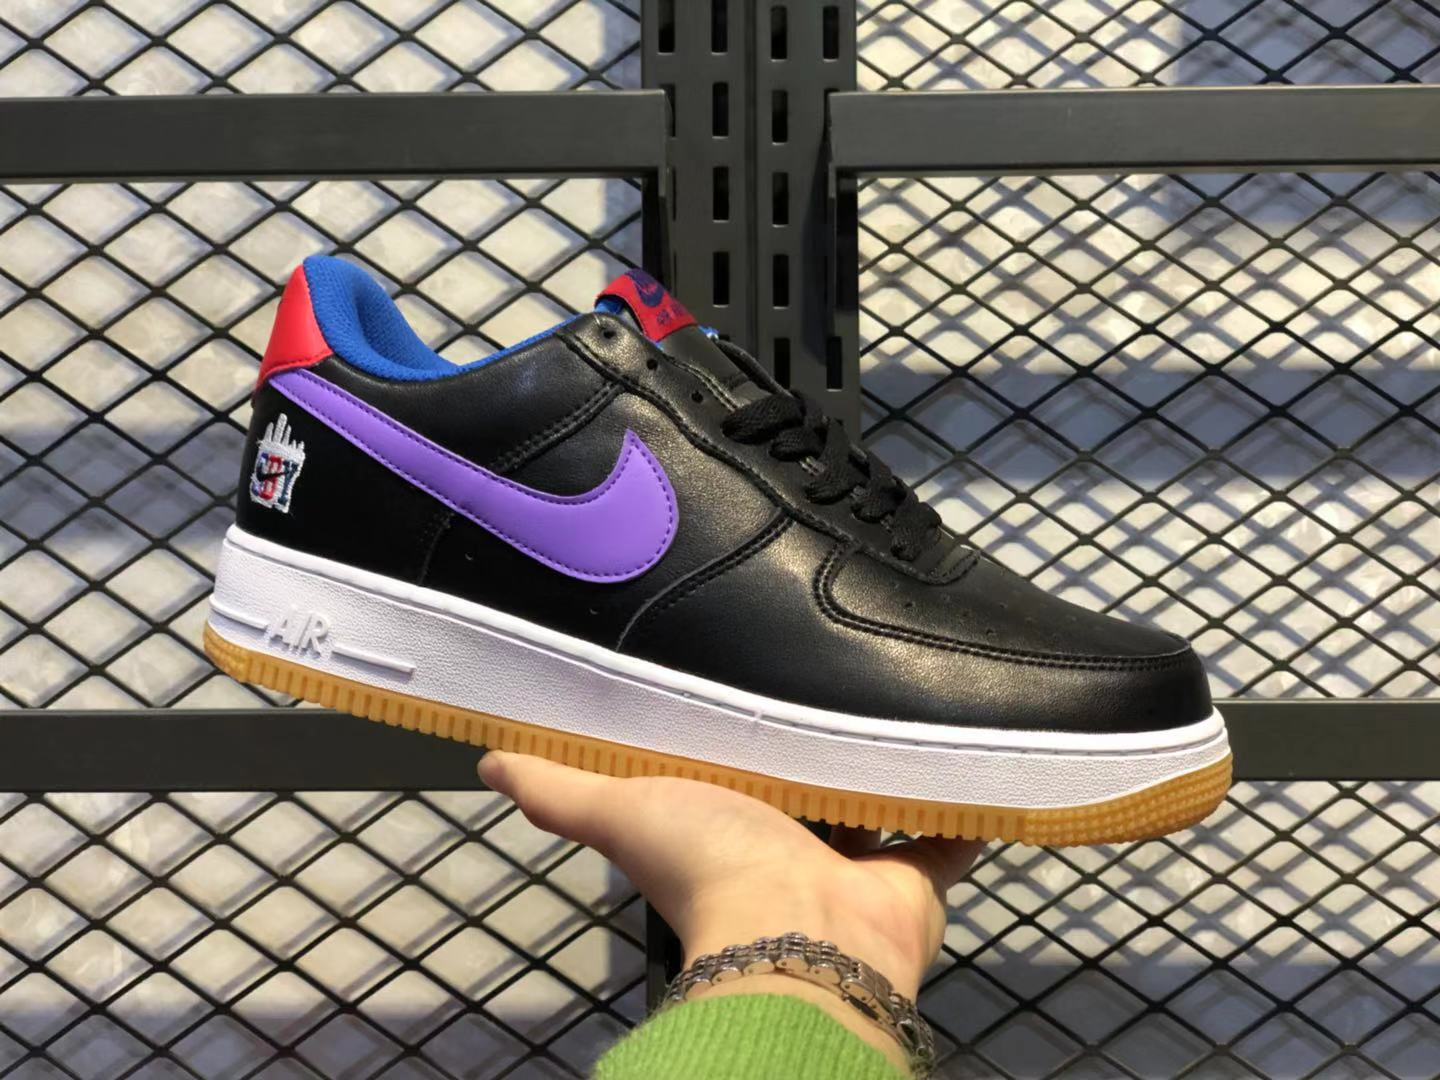 Nike WMNS Air Force 1'07 Black/Sultry Purple-Bright Red For Online Sale CQ7506-146